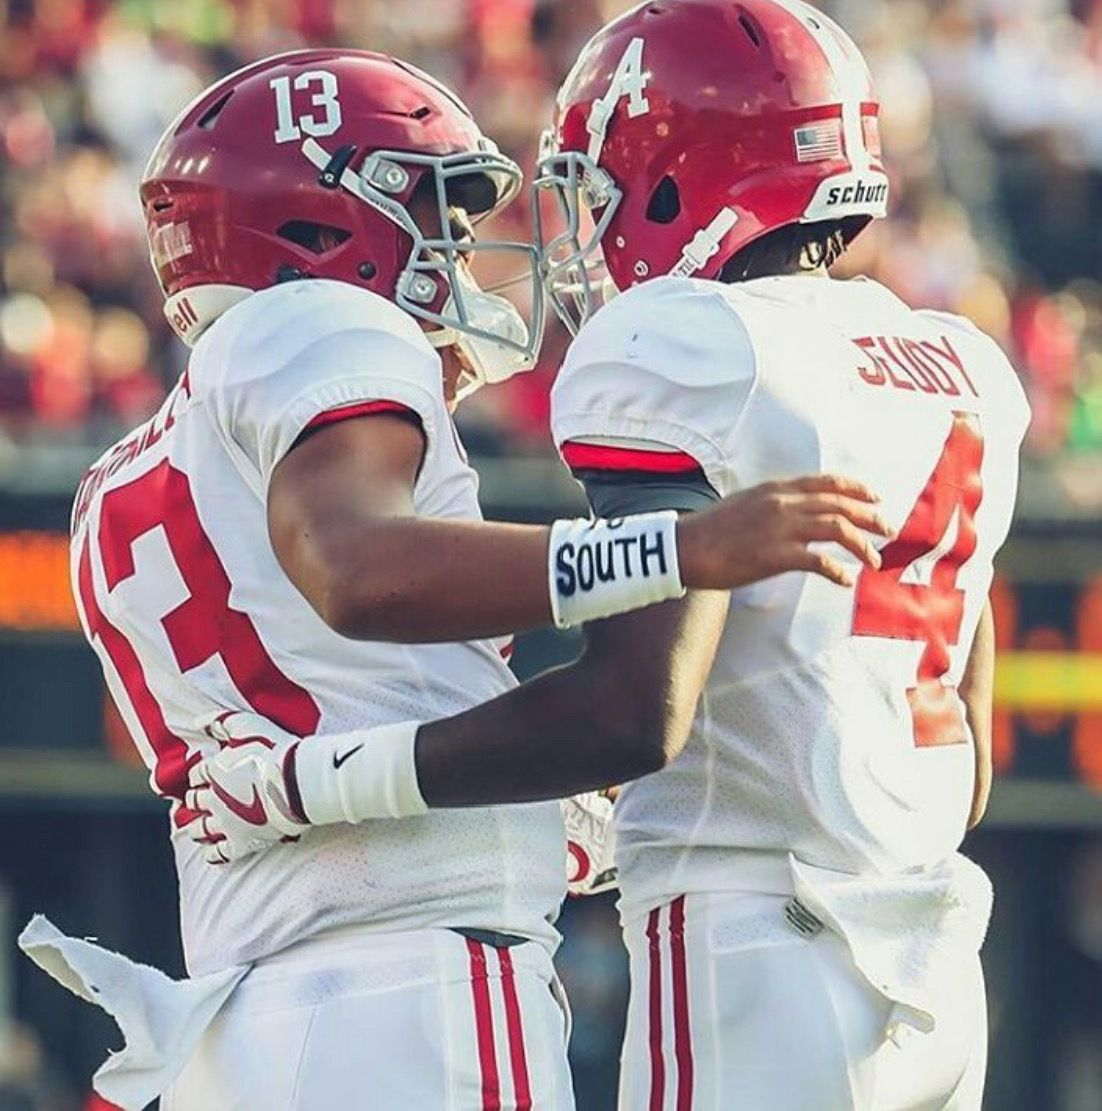 The Freshmen Connection Tua Tagovailoa To Jerry Jeudy For The Td Alabama Rolltide Bama Builtbybama R Alabama Crimson Tide Bama Football Alabama Football